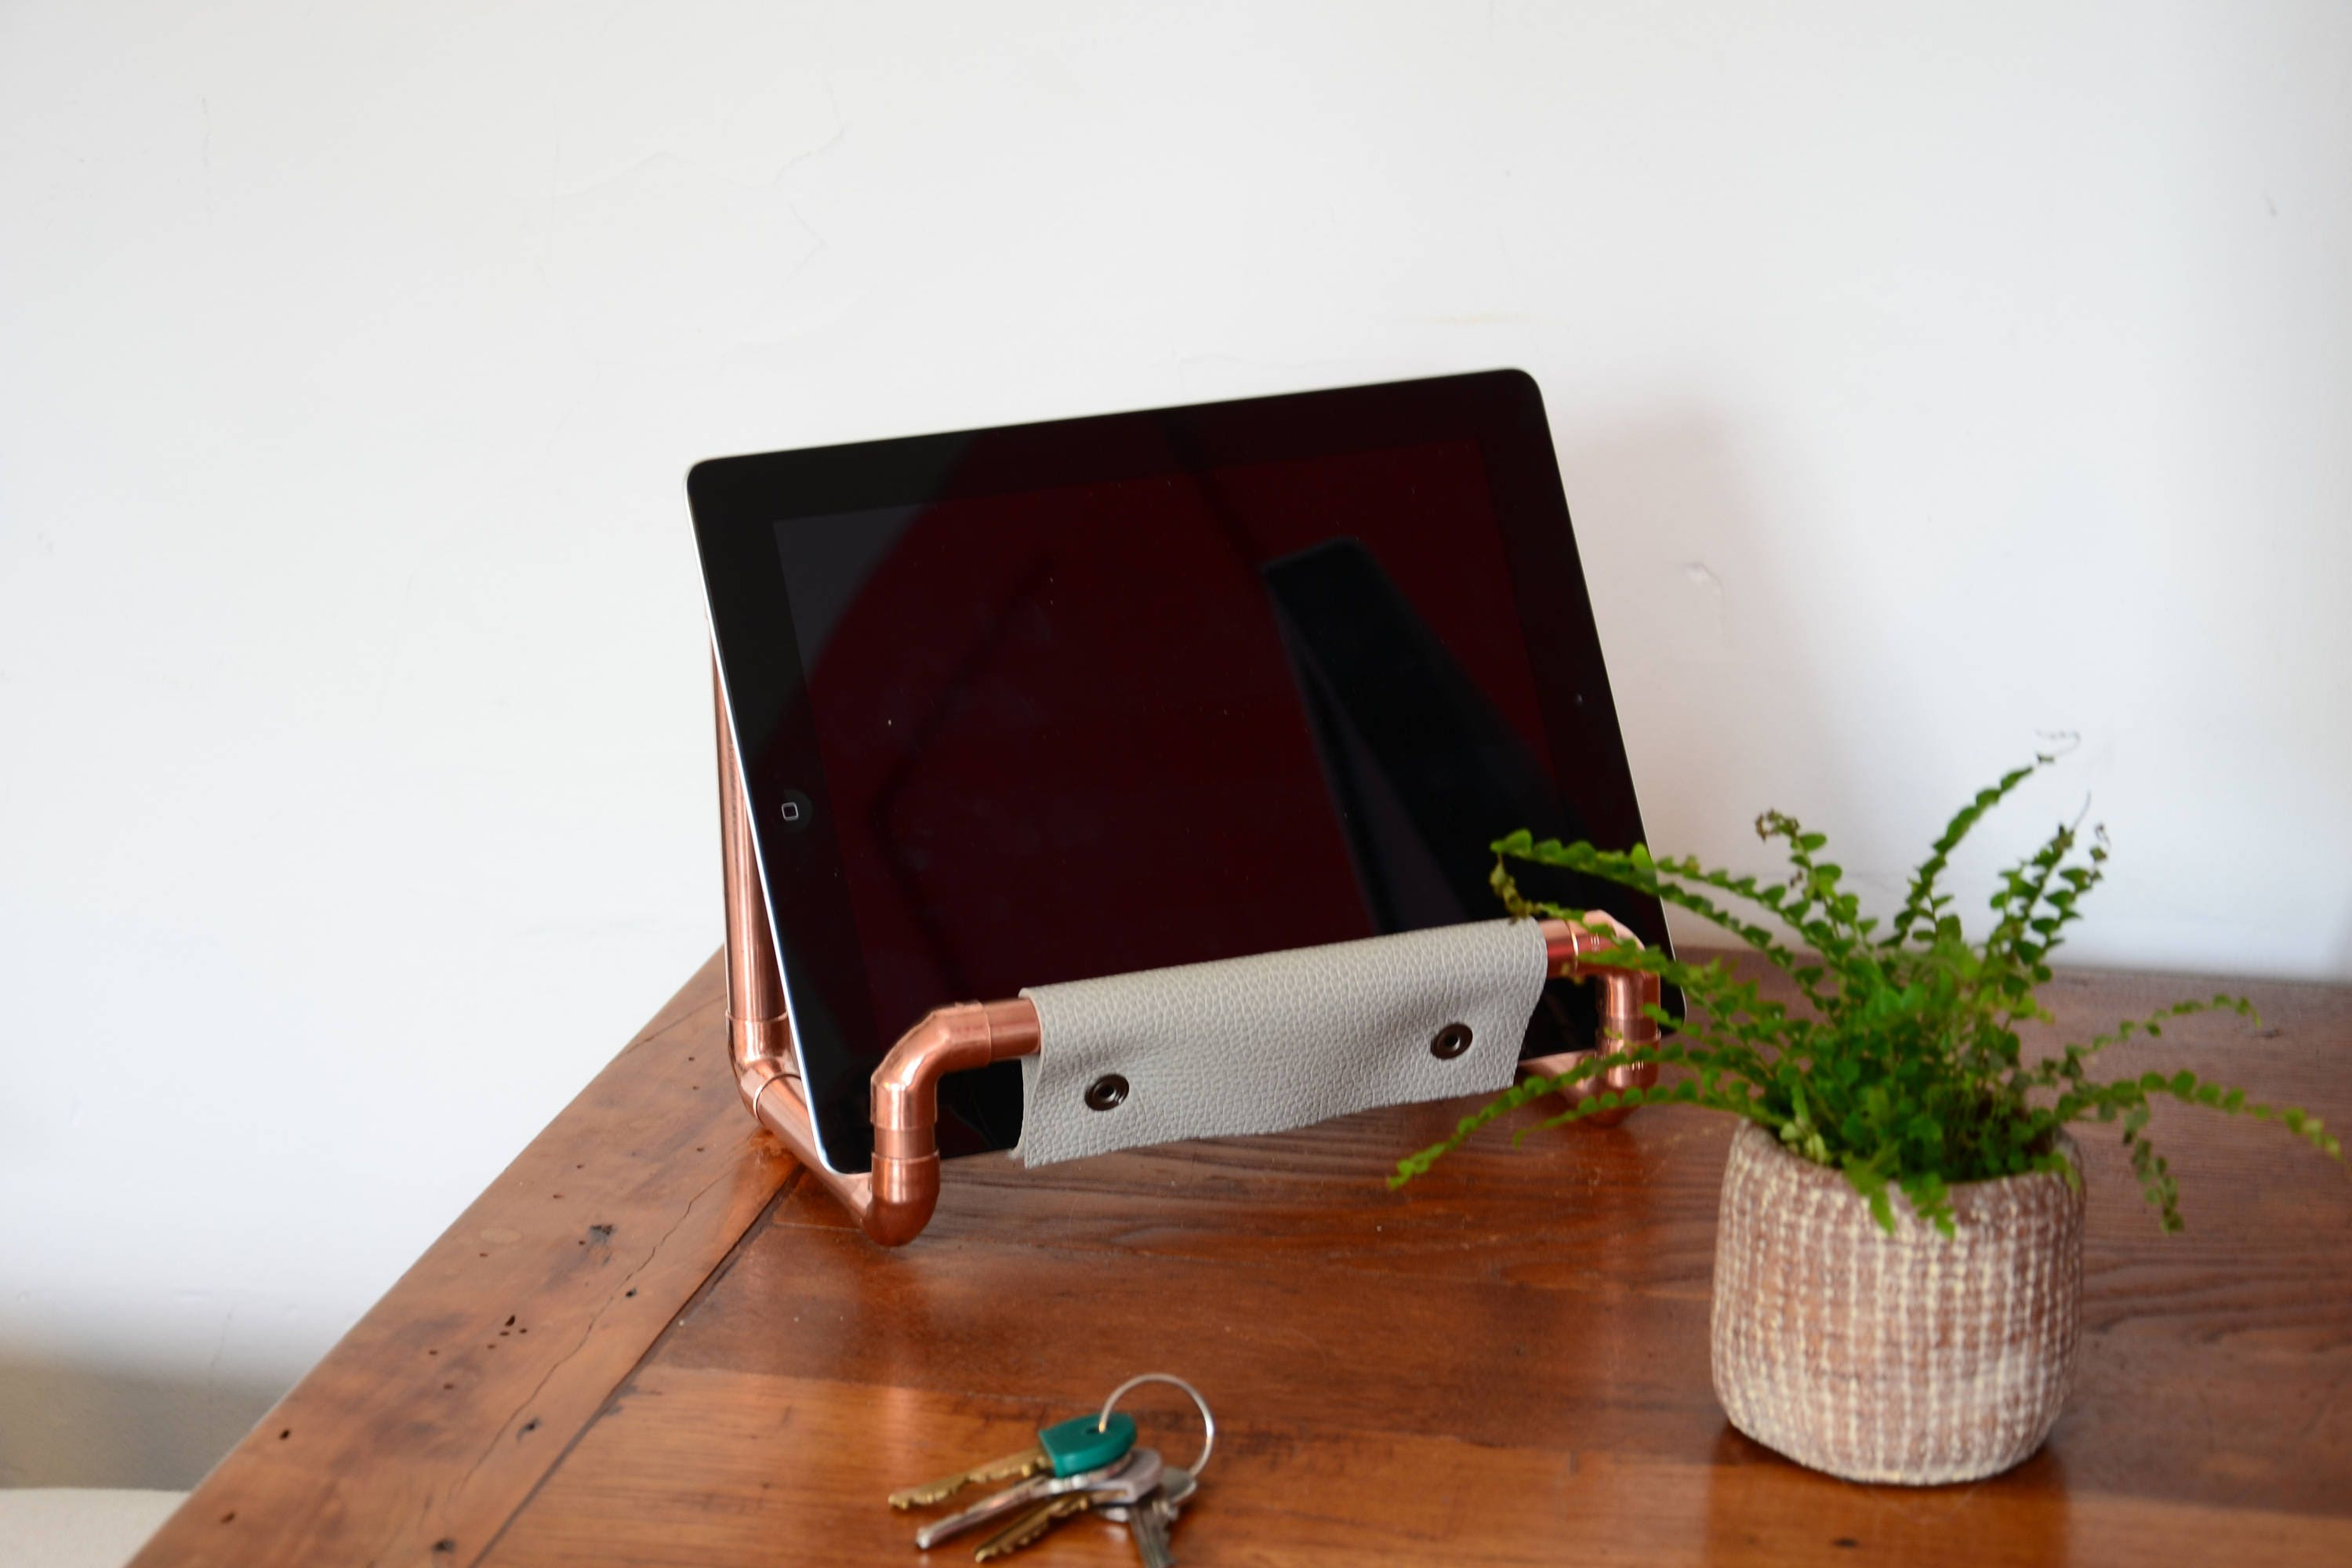 Leather desk accessory  Ipad holder Copper tablet stand Copper kitchen accessory Industrial Decor Copper furniture House organizer